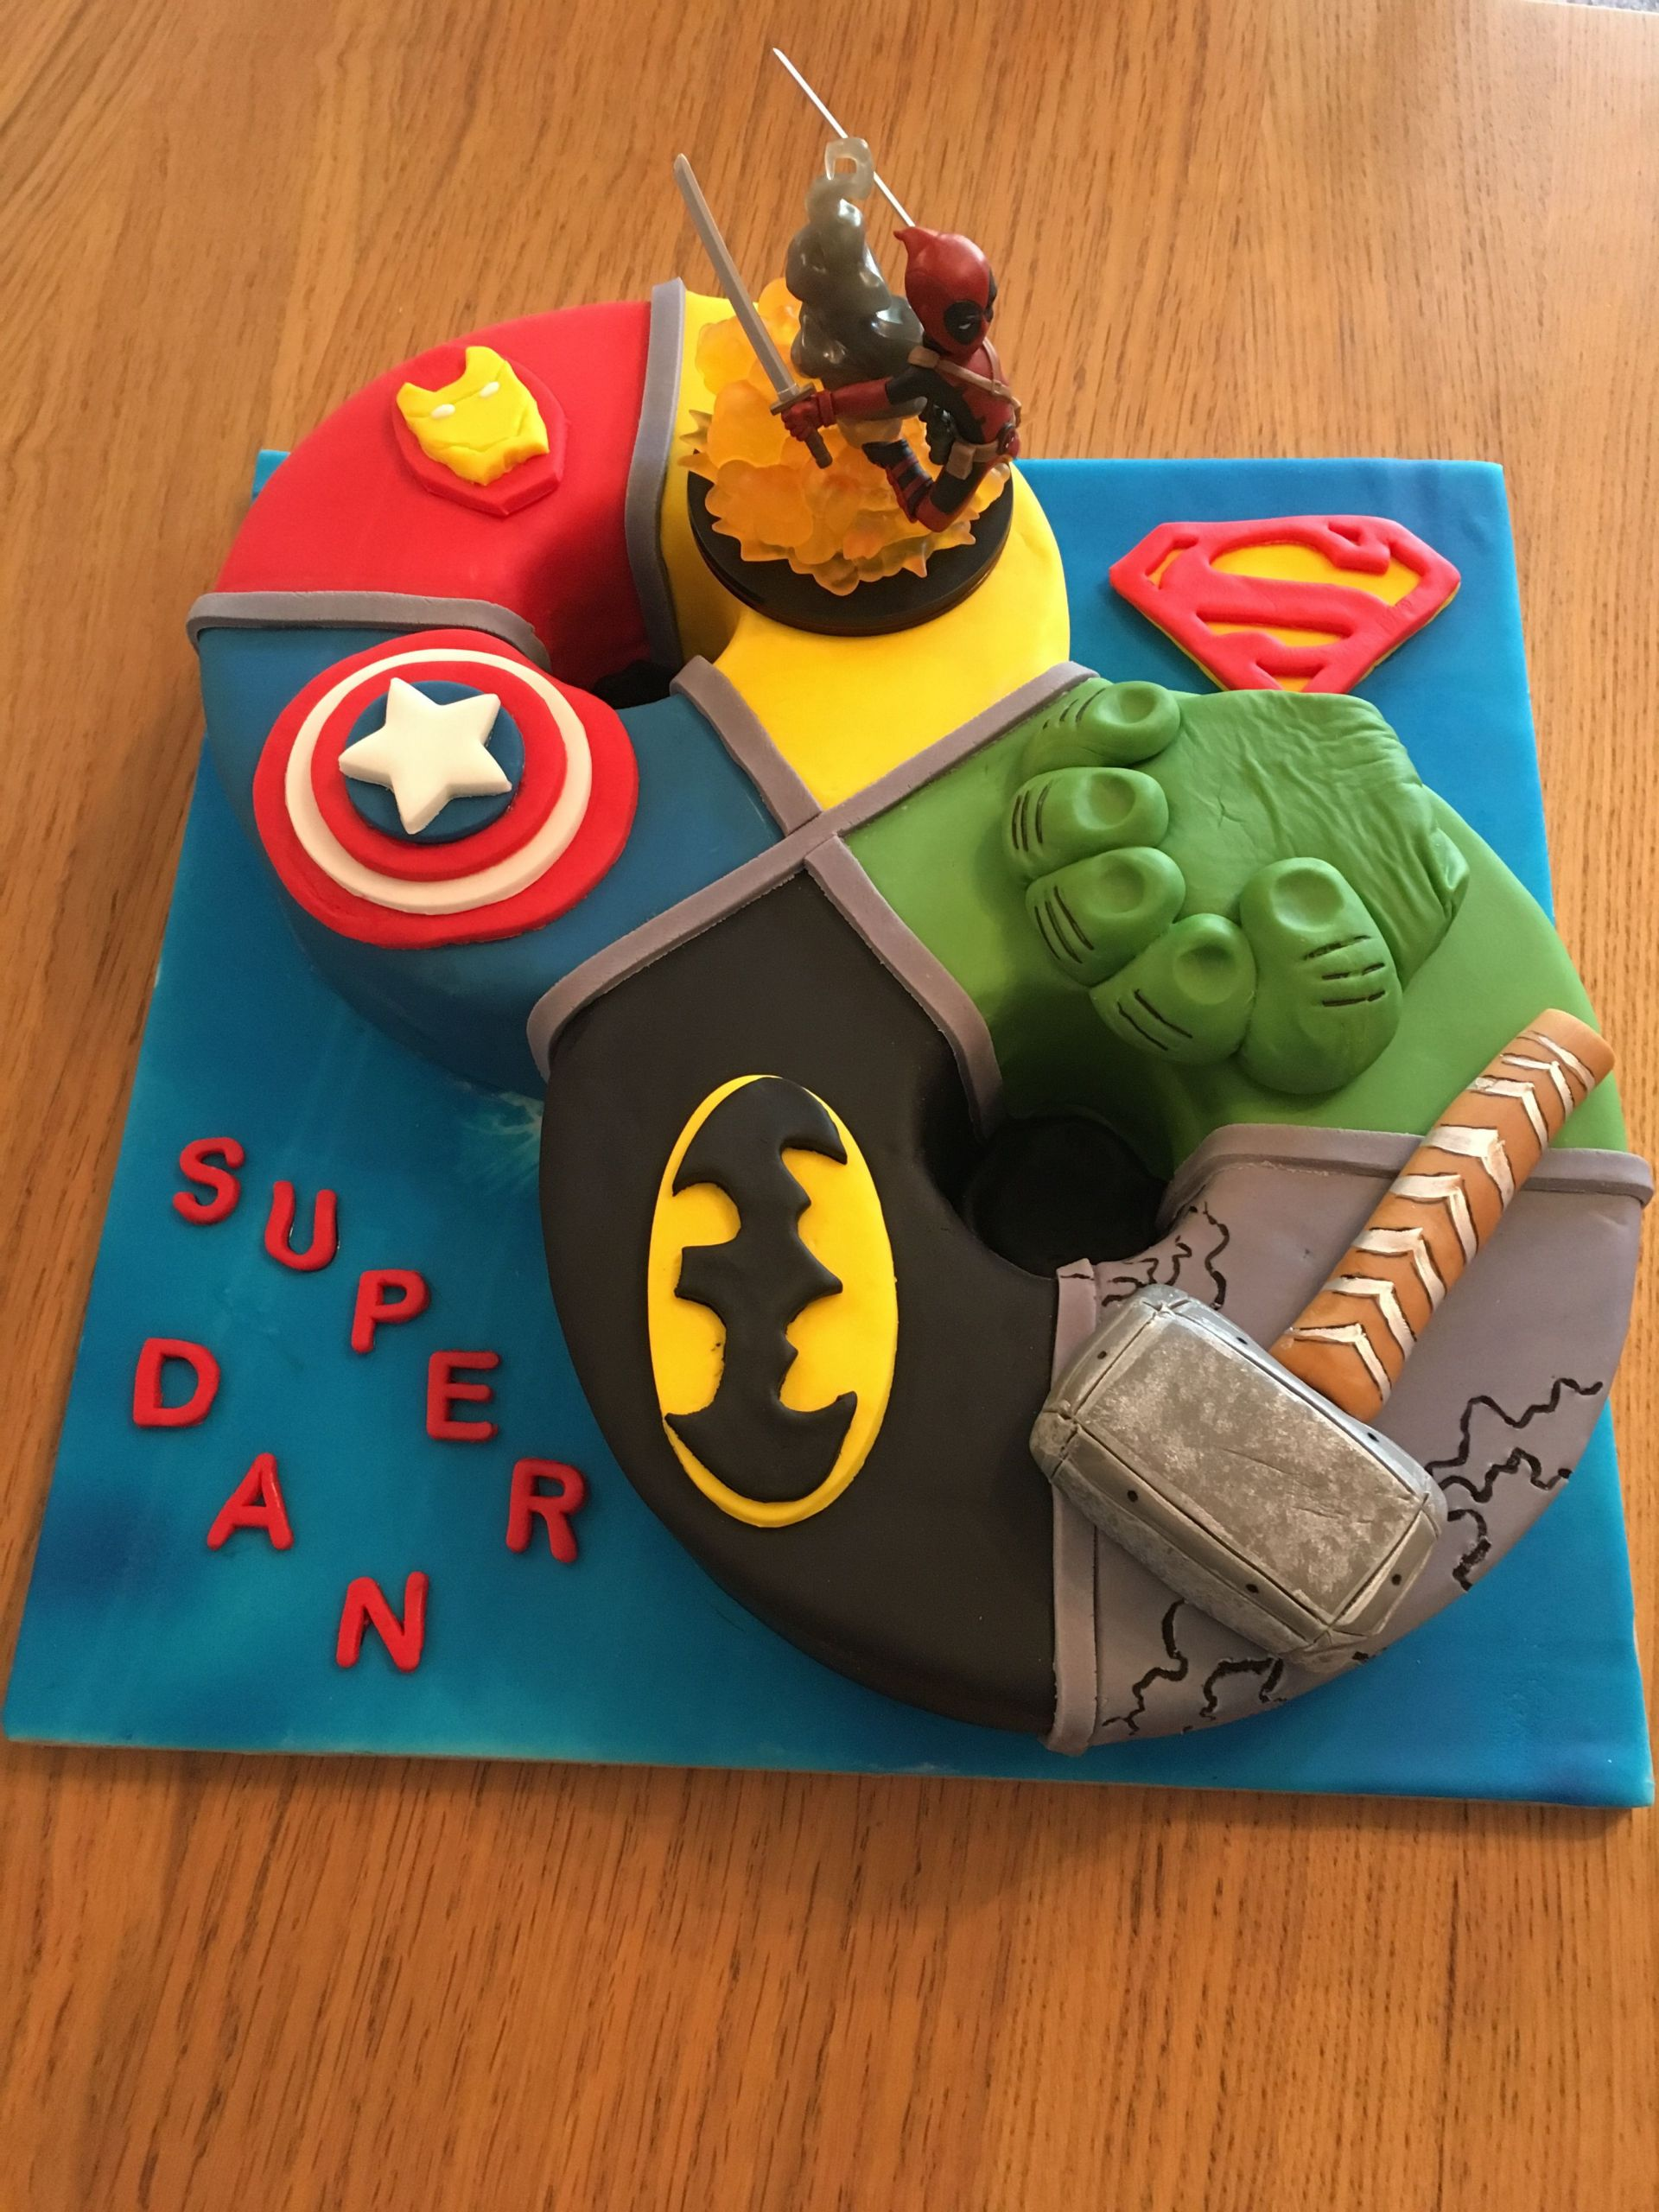 8 Year Old Boy Birthday Party Theme Ideas  Superhero birthday cake for 8 year old boy With images